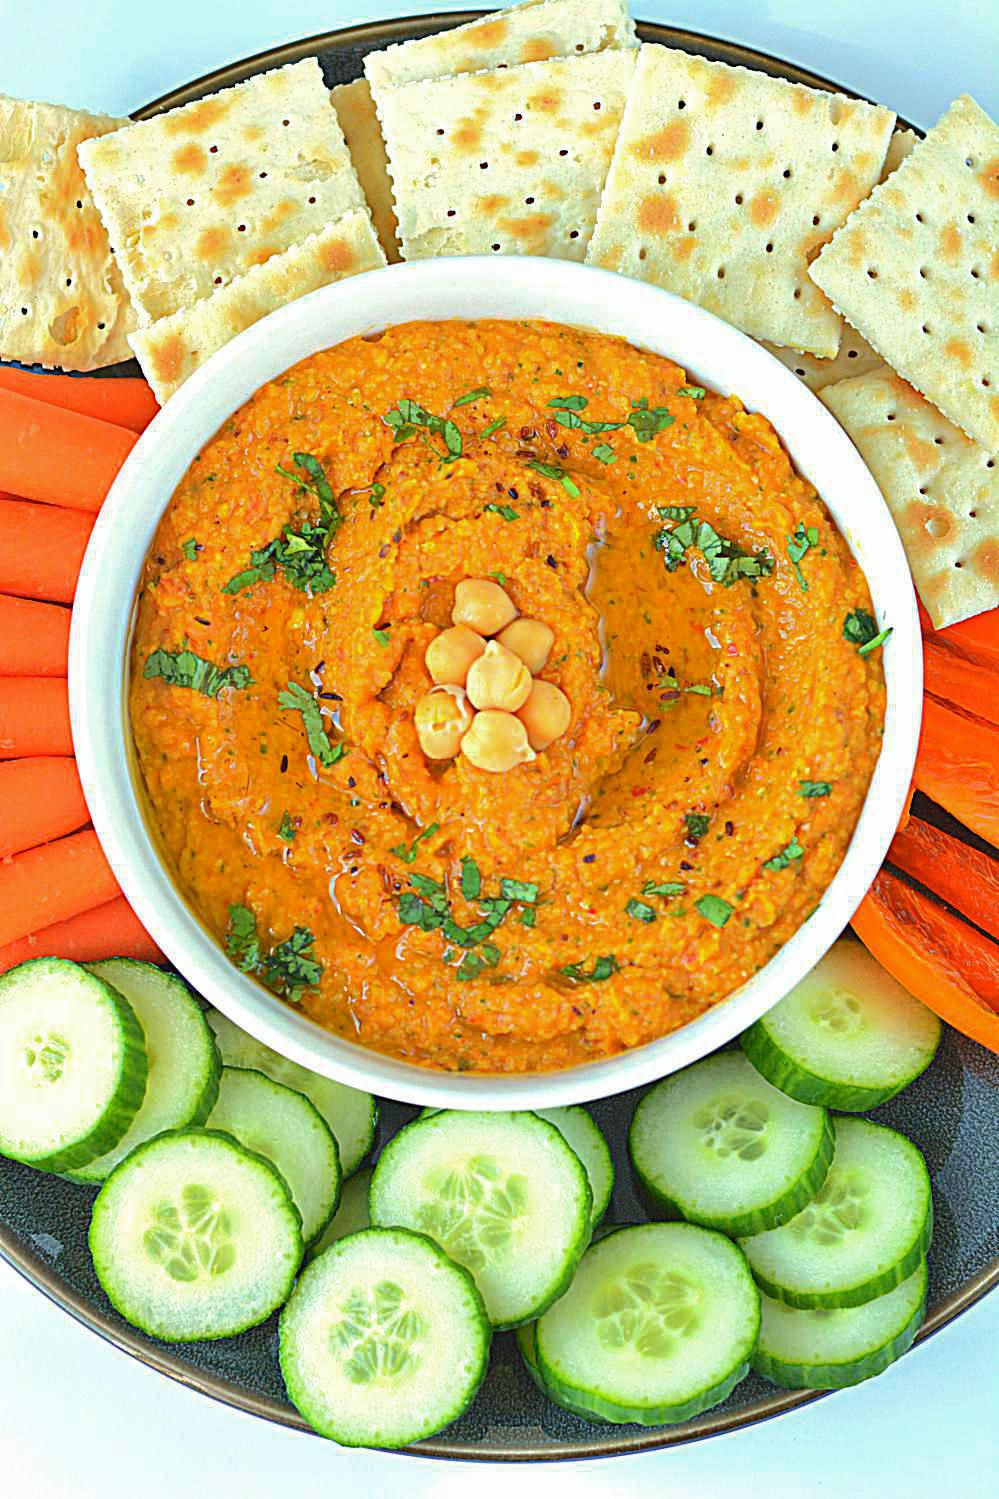 Spicy Chickpea Hummus Recipe